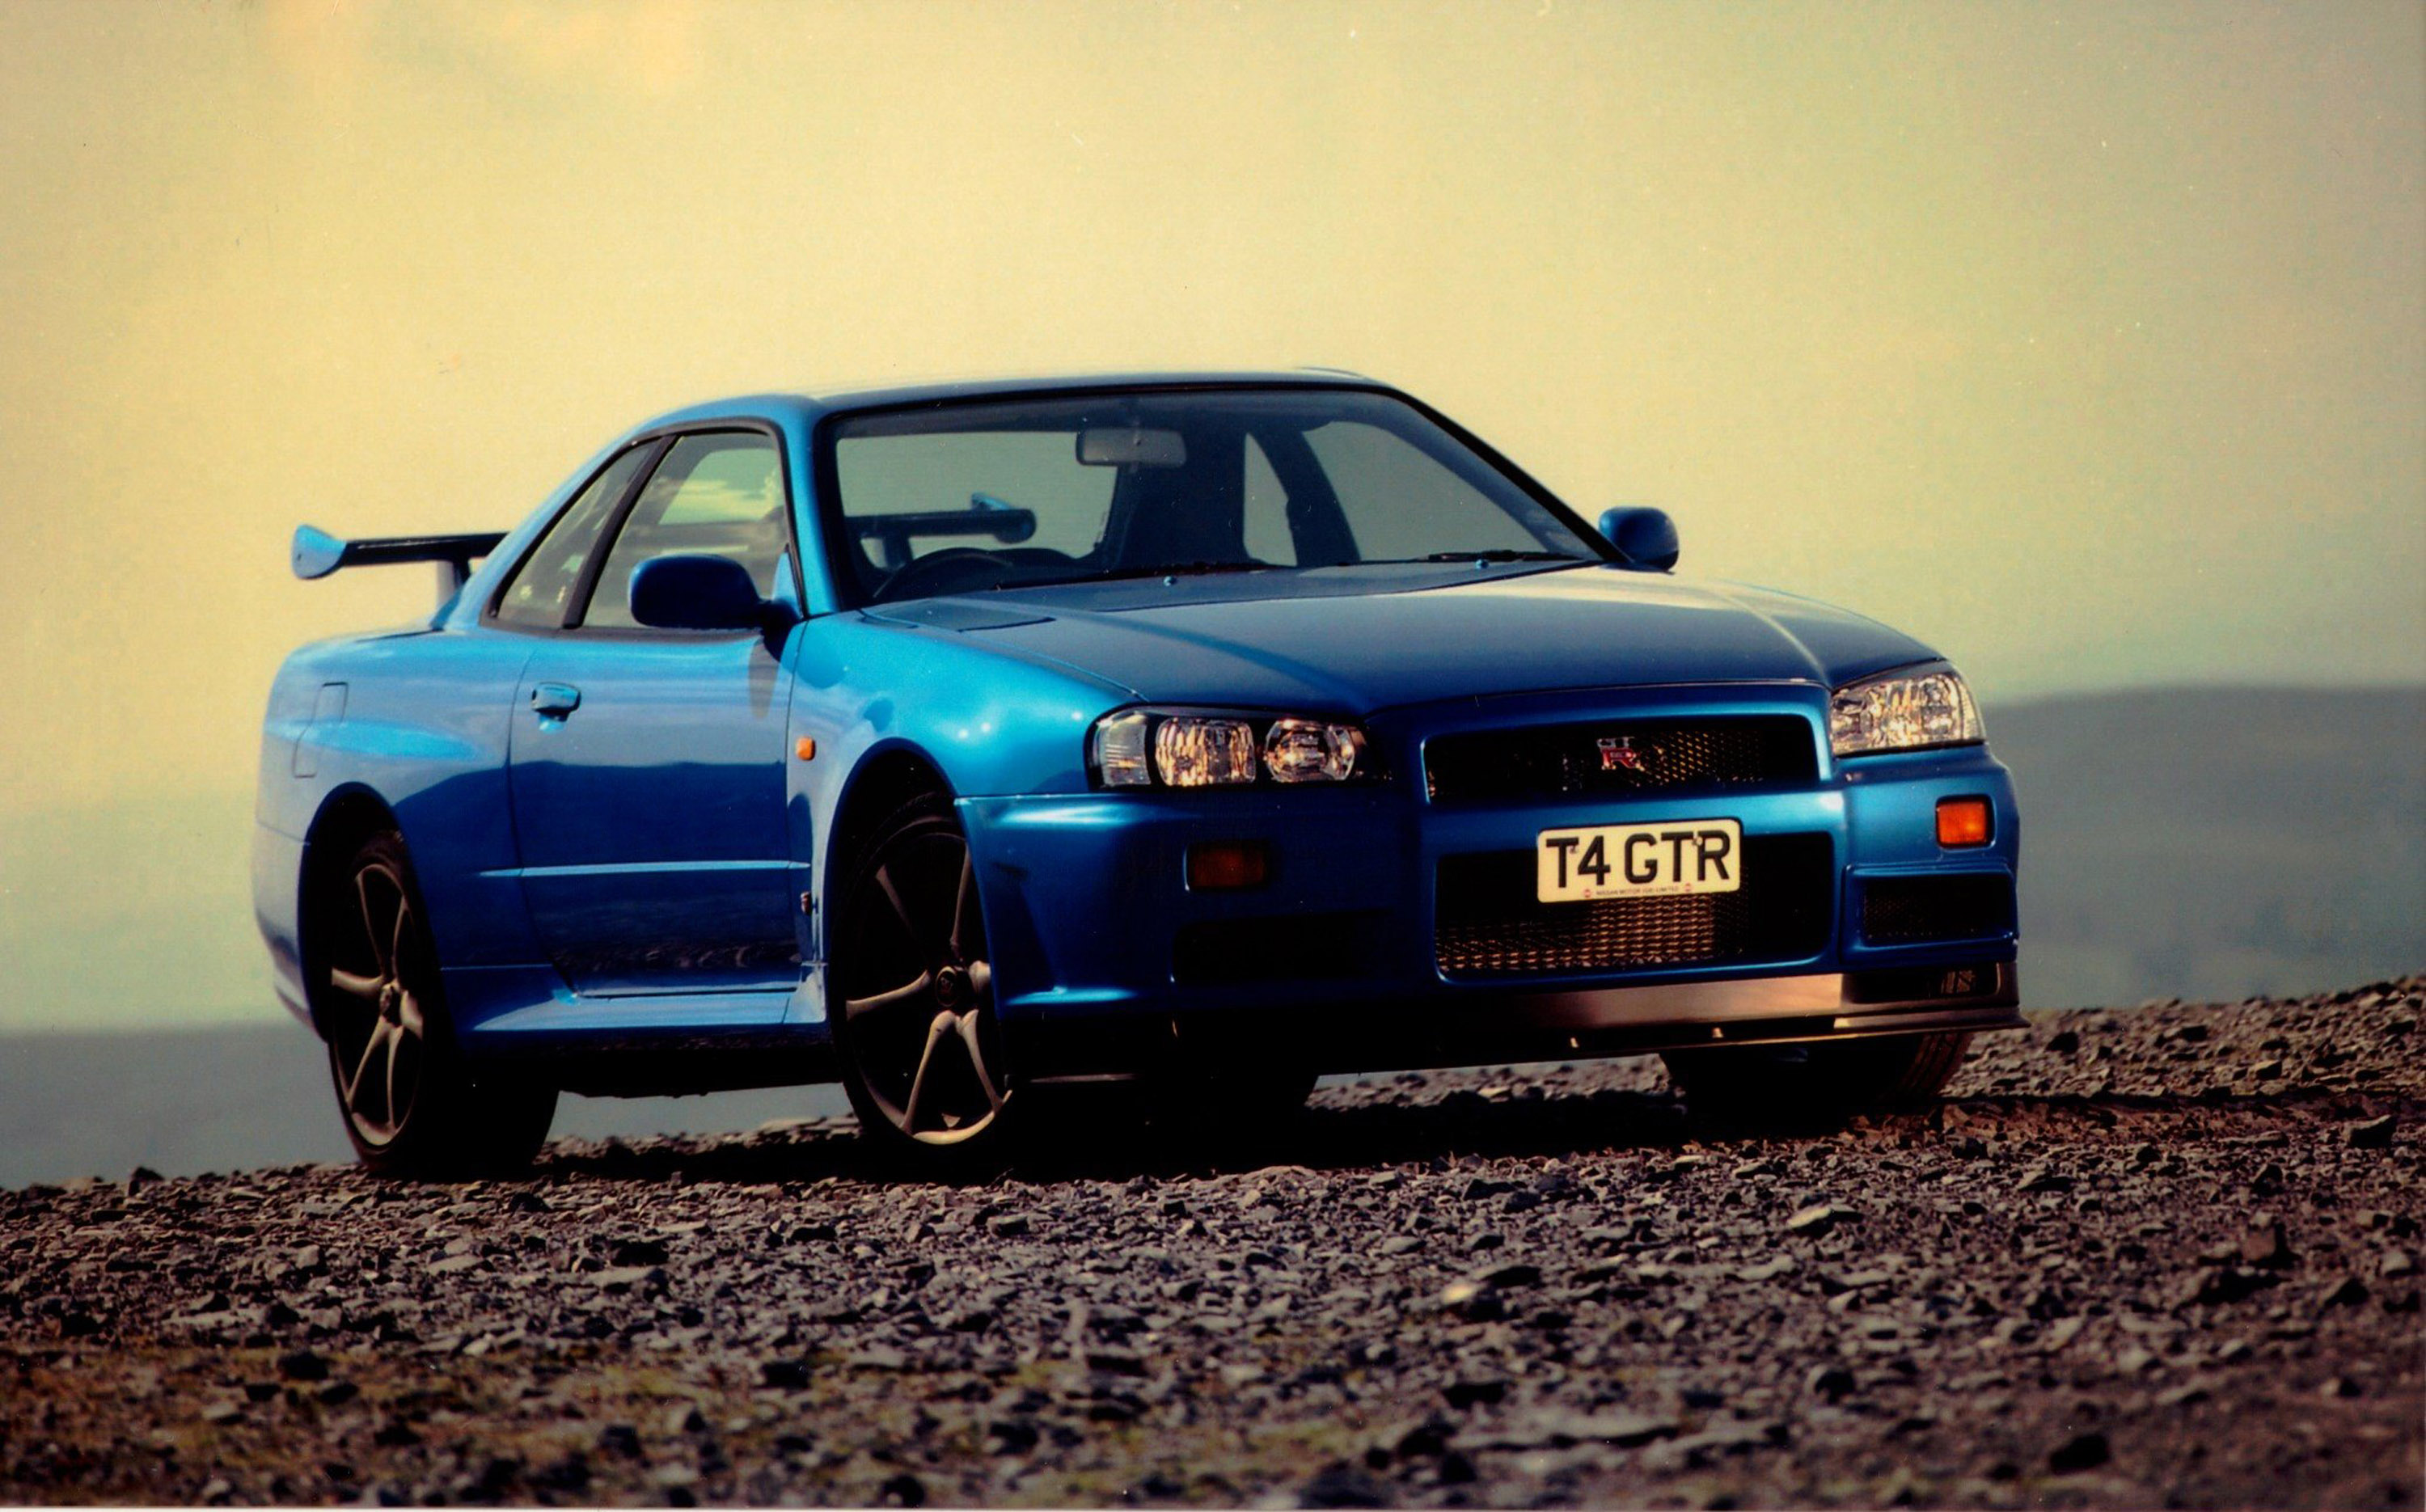 3dtuning of nissan skyline gt-r coupe 2002 3dtuning - unique